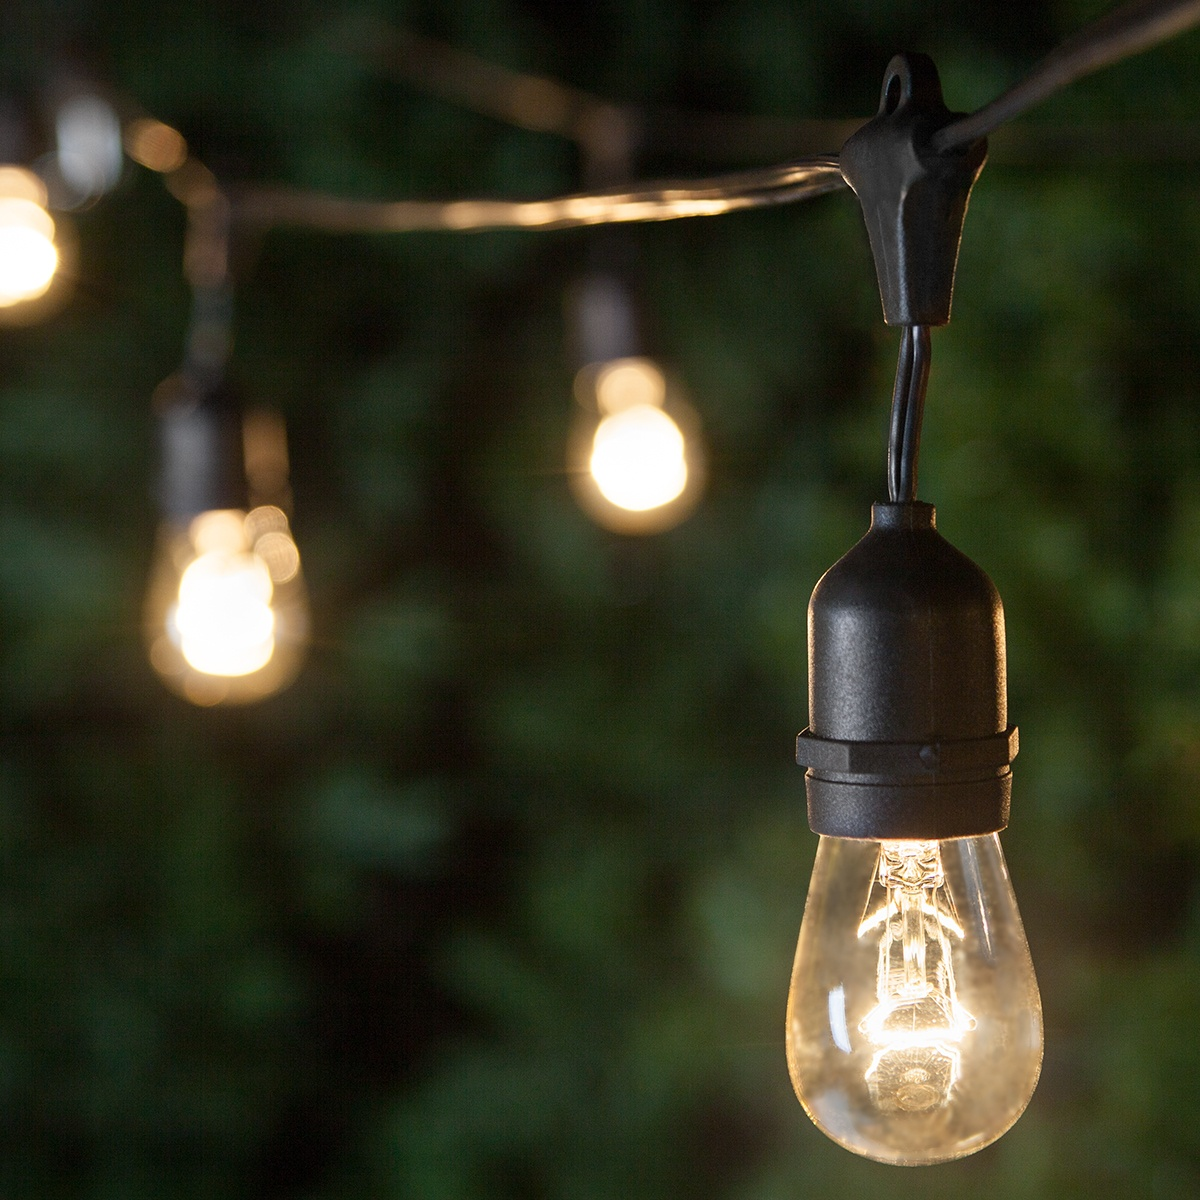 Elegant 54u0027 Commercial Patio String With 24 Suspended S14 Clear Outdoor Patio Lights